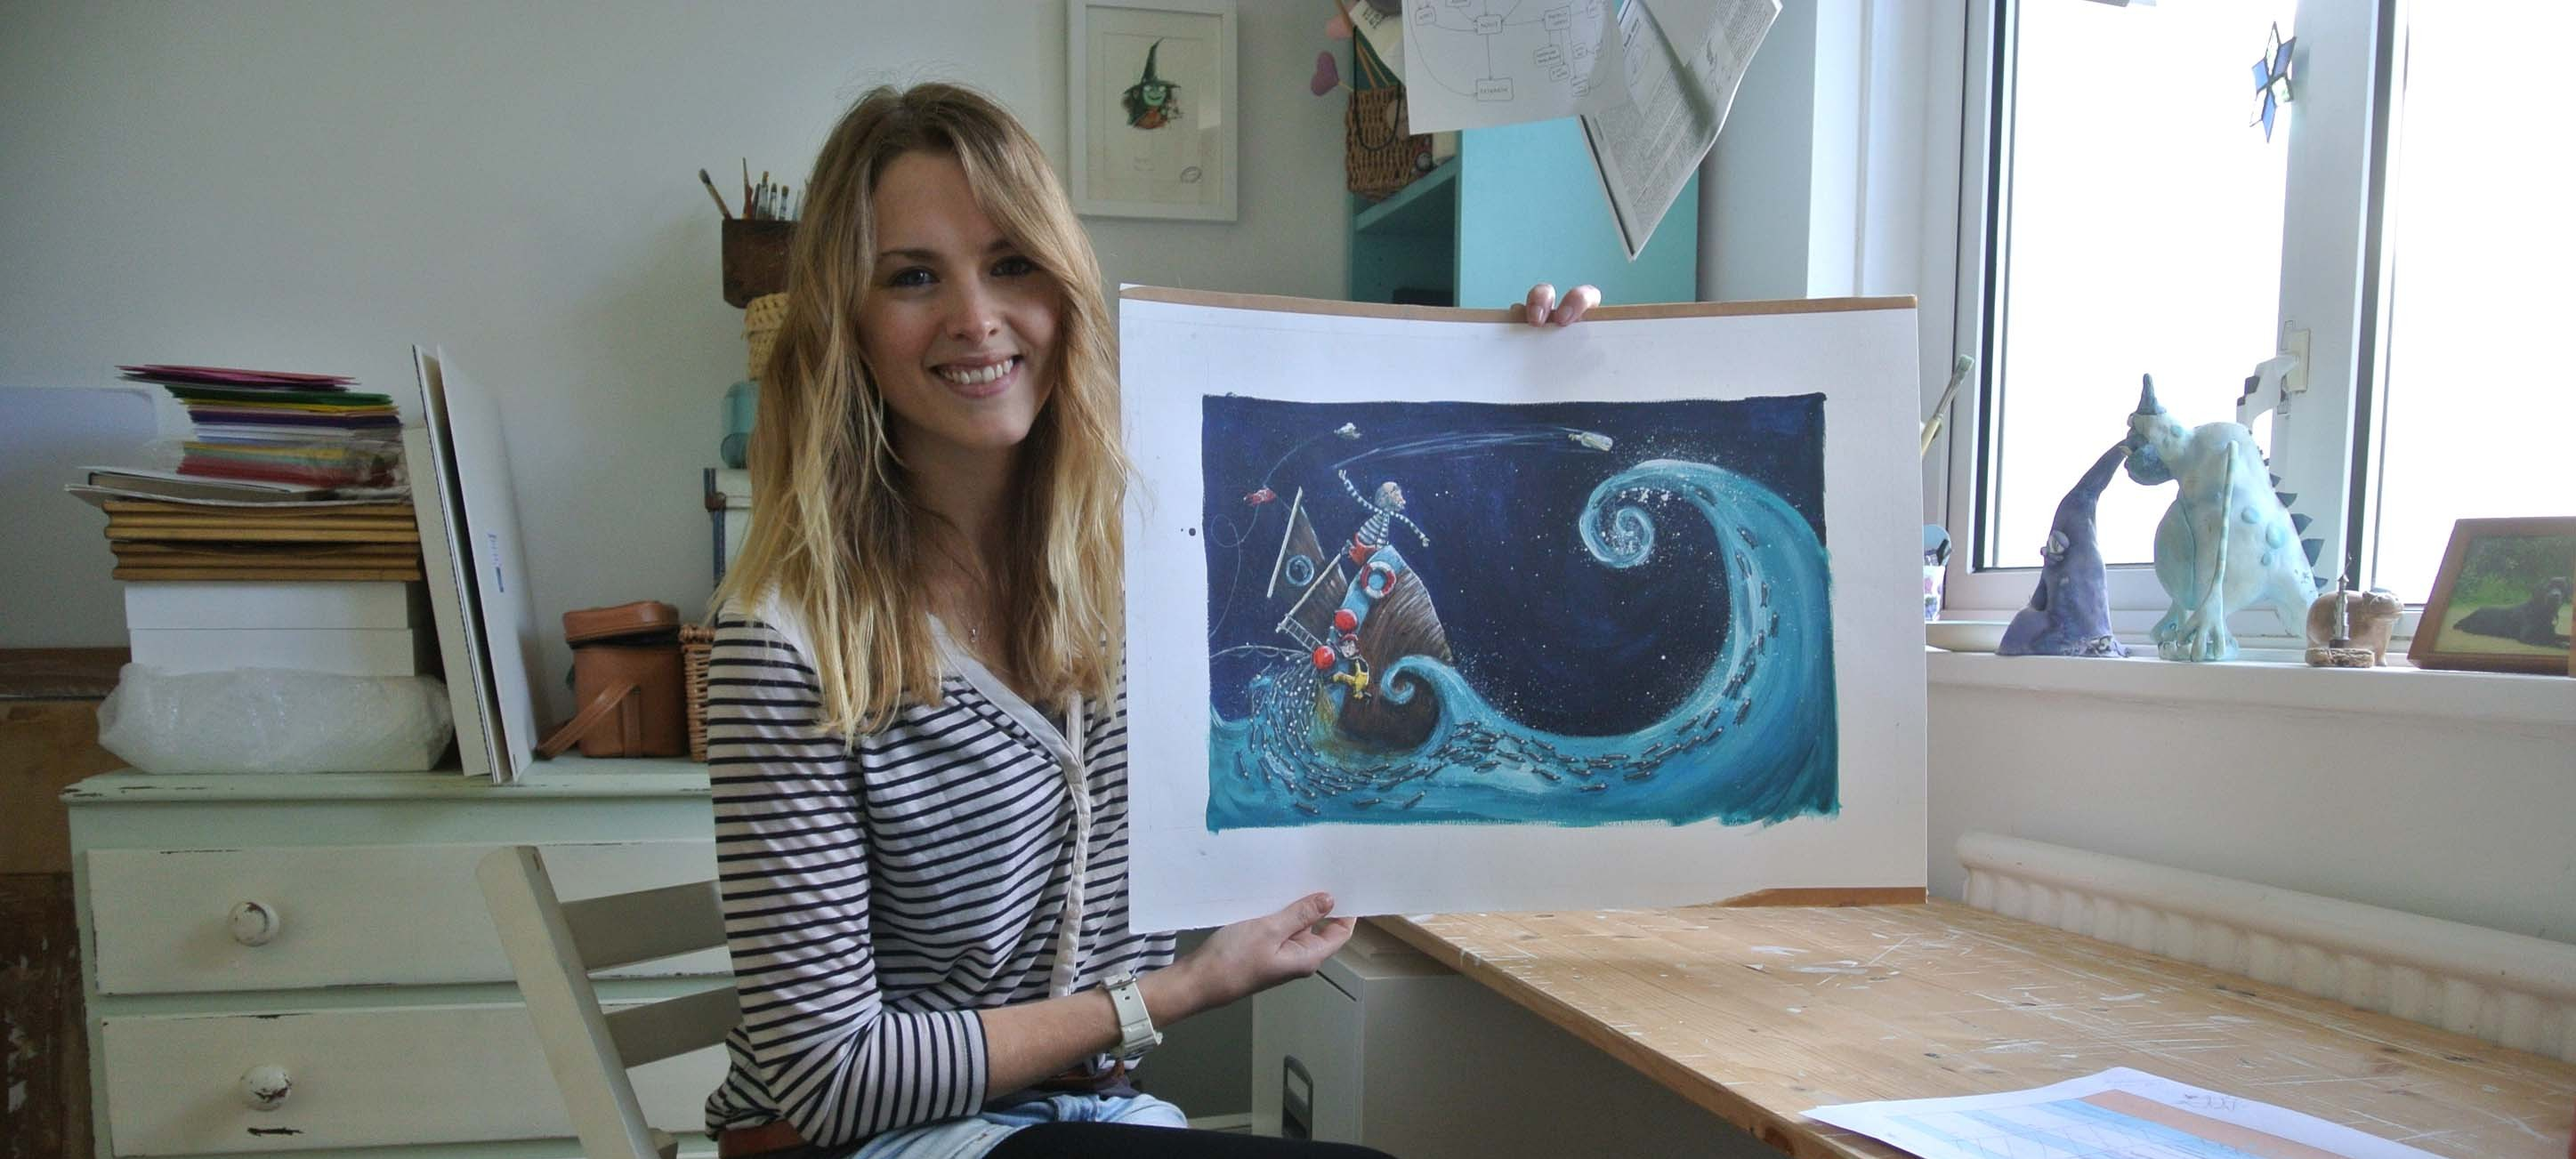 Zoe with an image from her children's book, 'The Lighthouse Keeper'